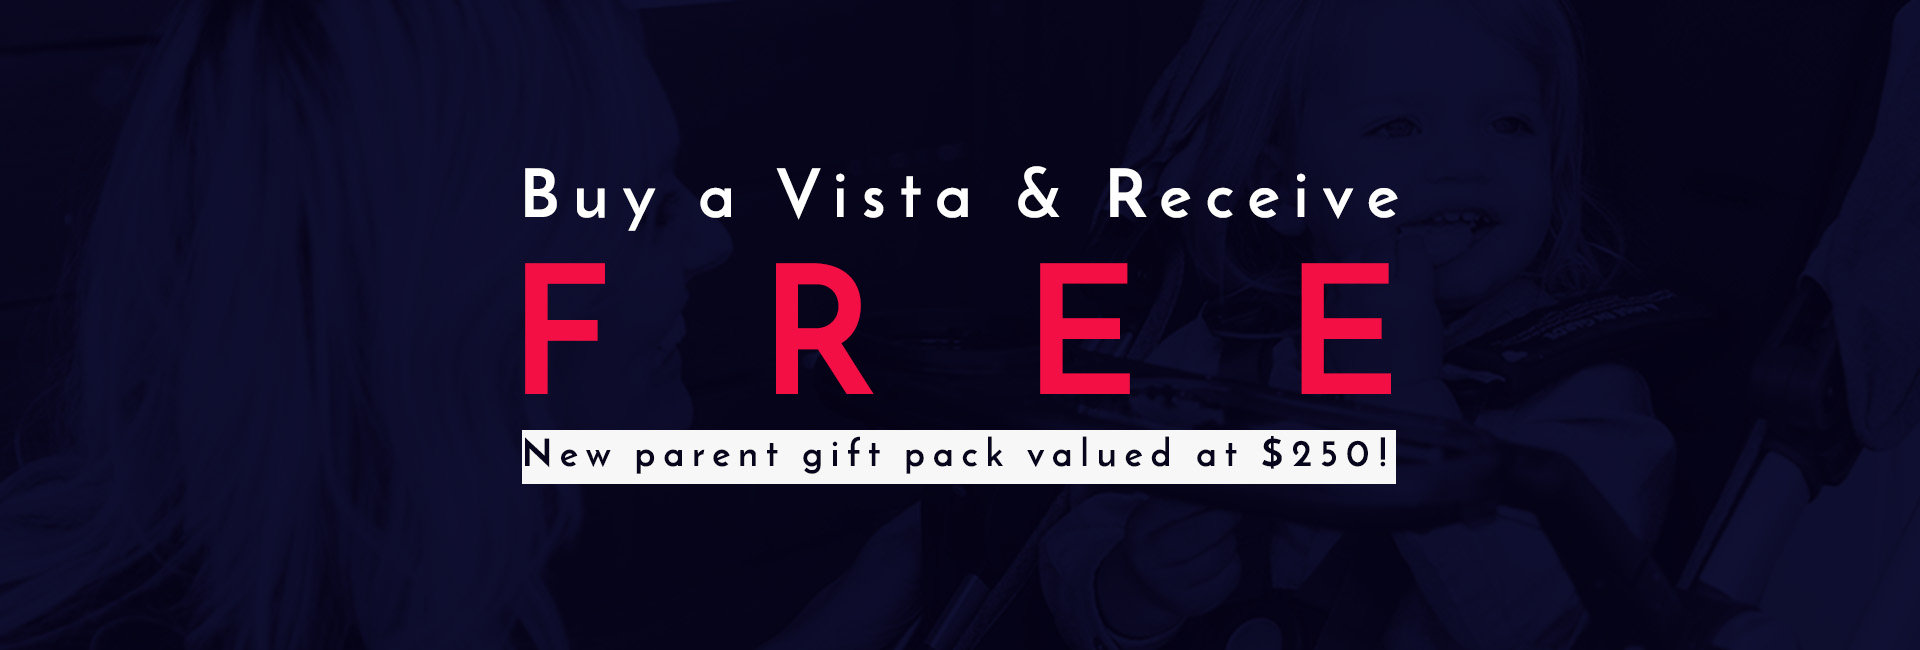 Buy a Vista and get $250 free gift pack